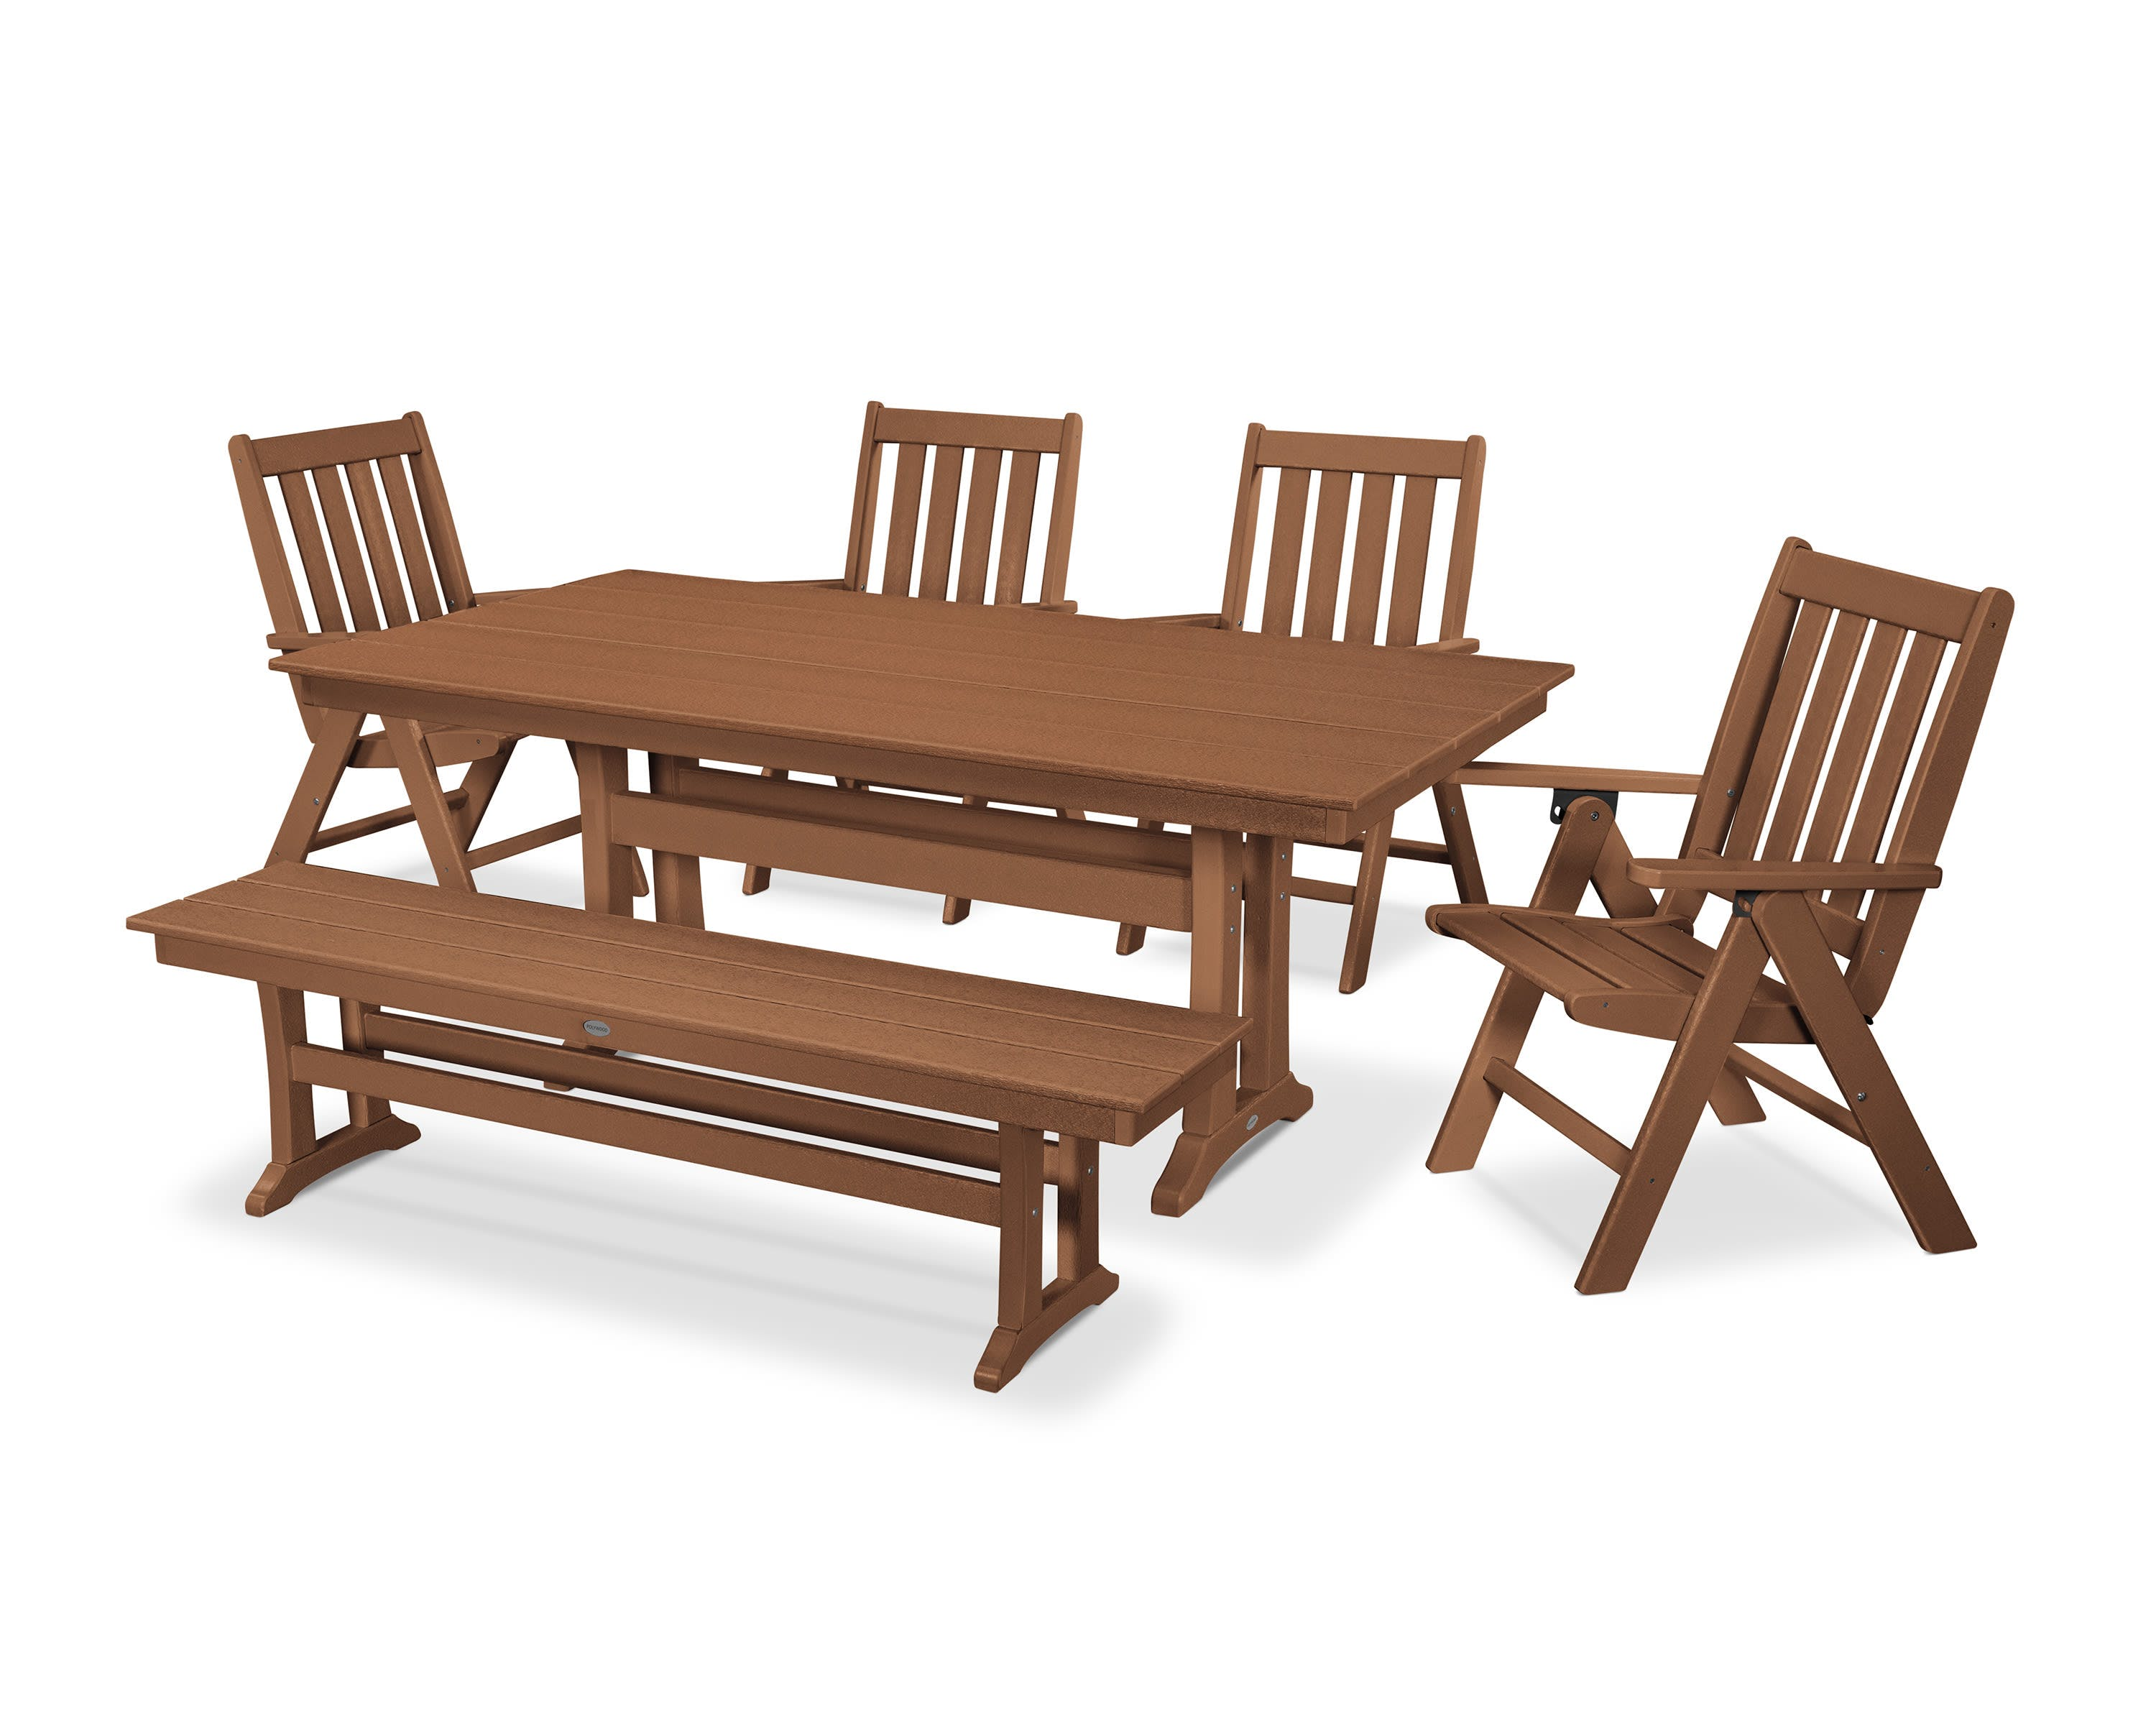 Vineyard 6 Piece Farmhouse Folding Dining Set With Bench